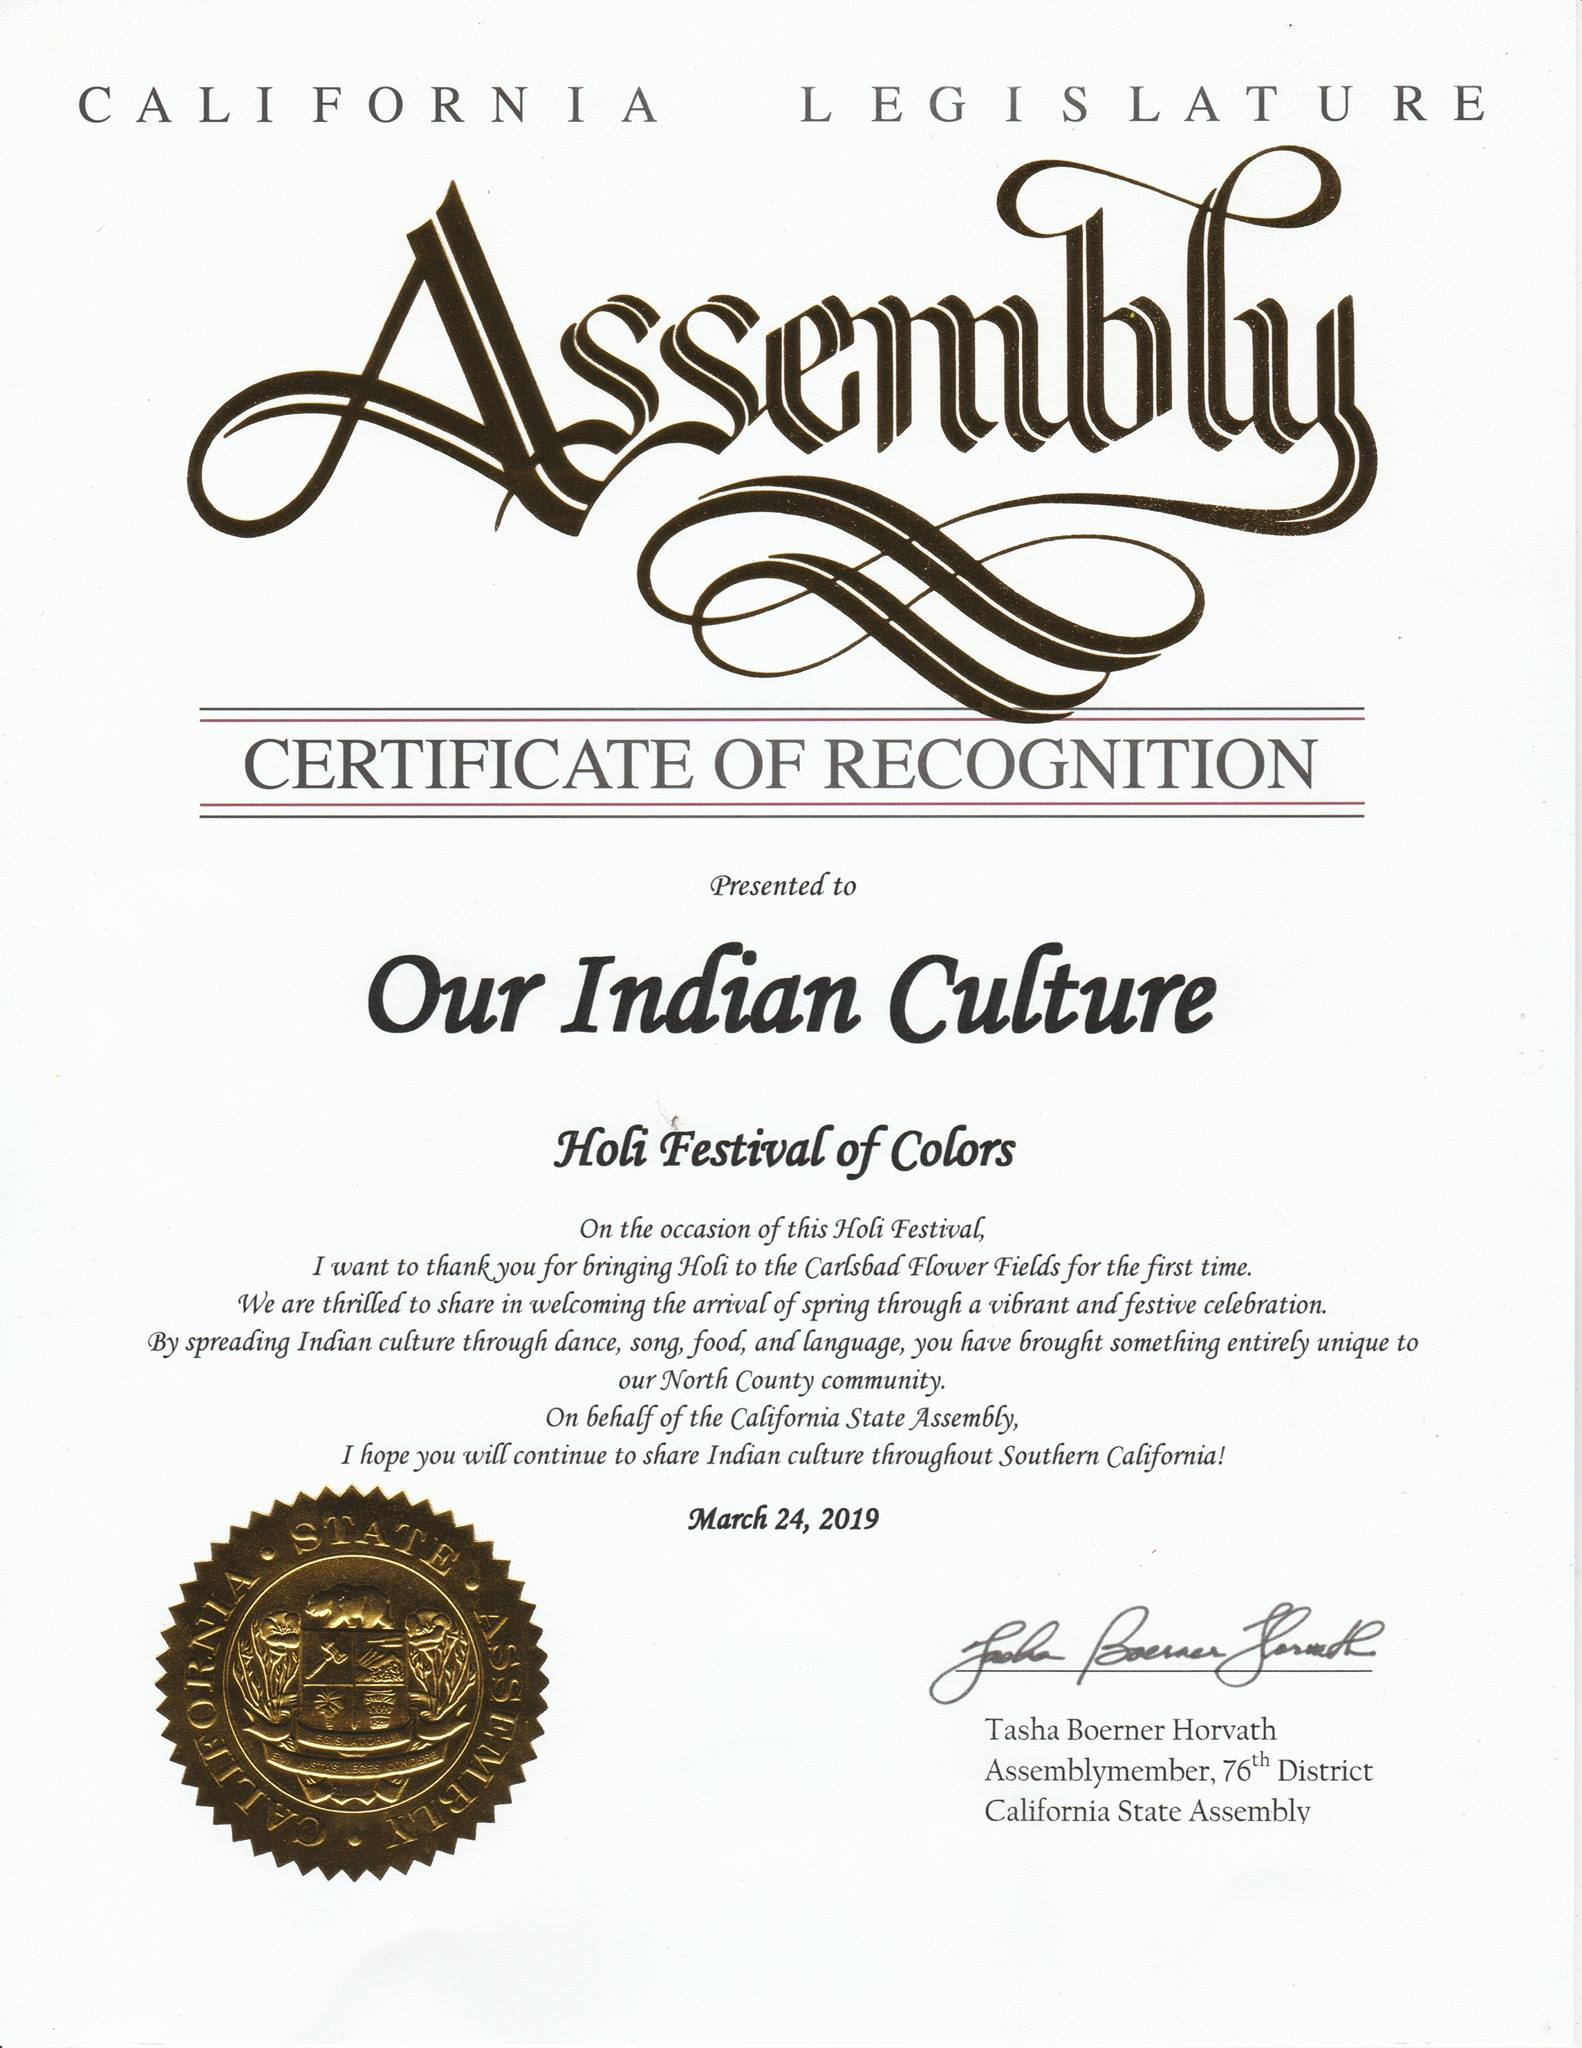 Our Indian Culture awarded by California state Legislature for HOLI Festival of colors at The Flower Fields Carlsbad